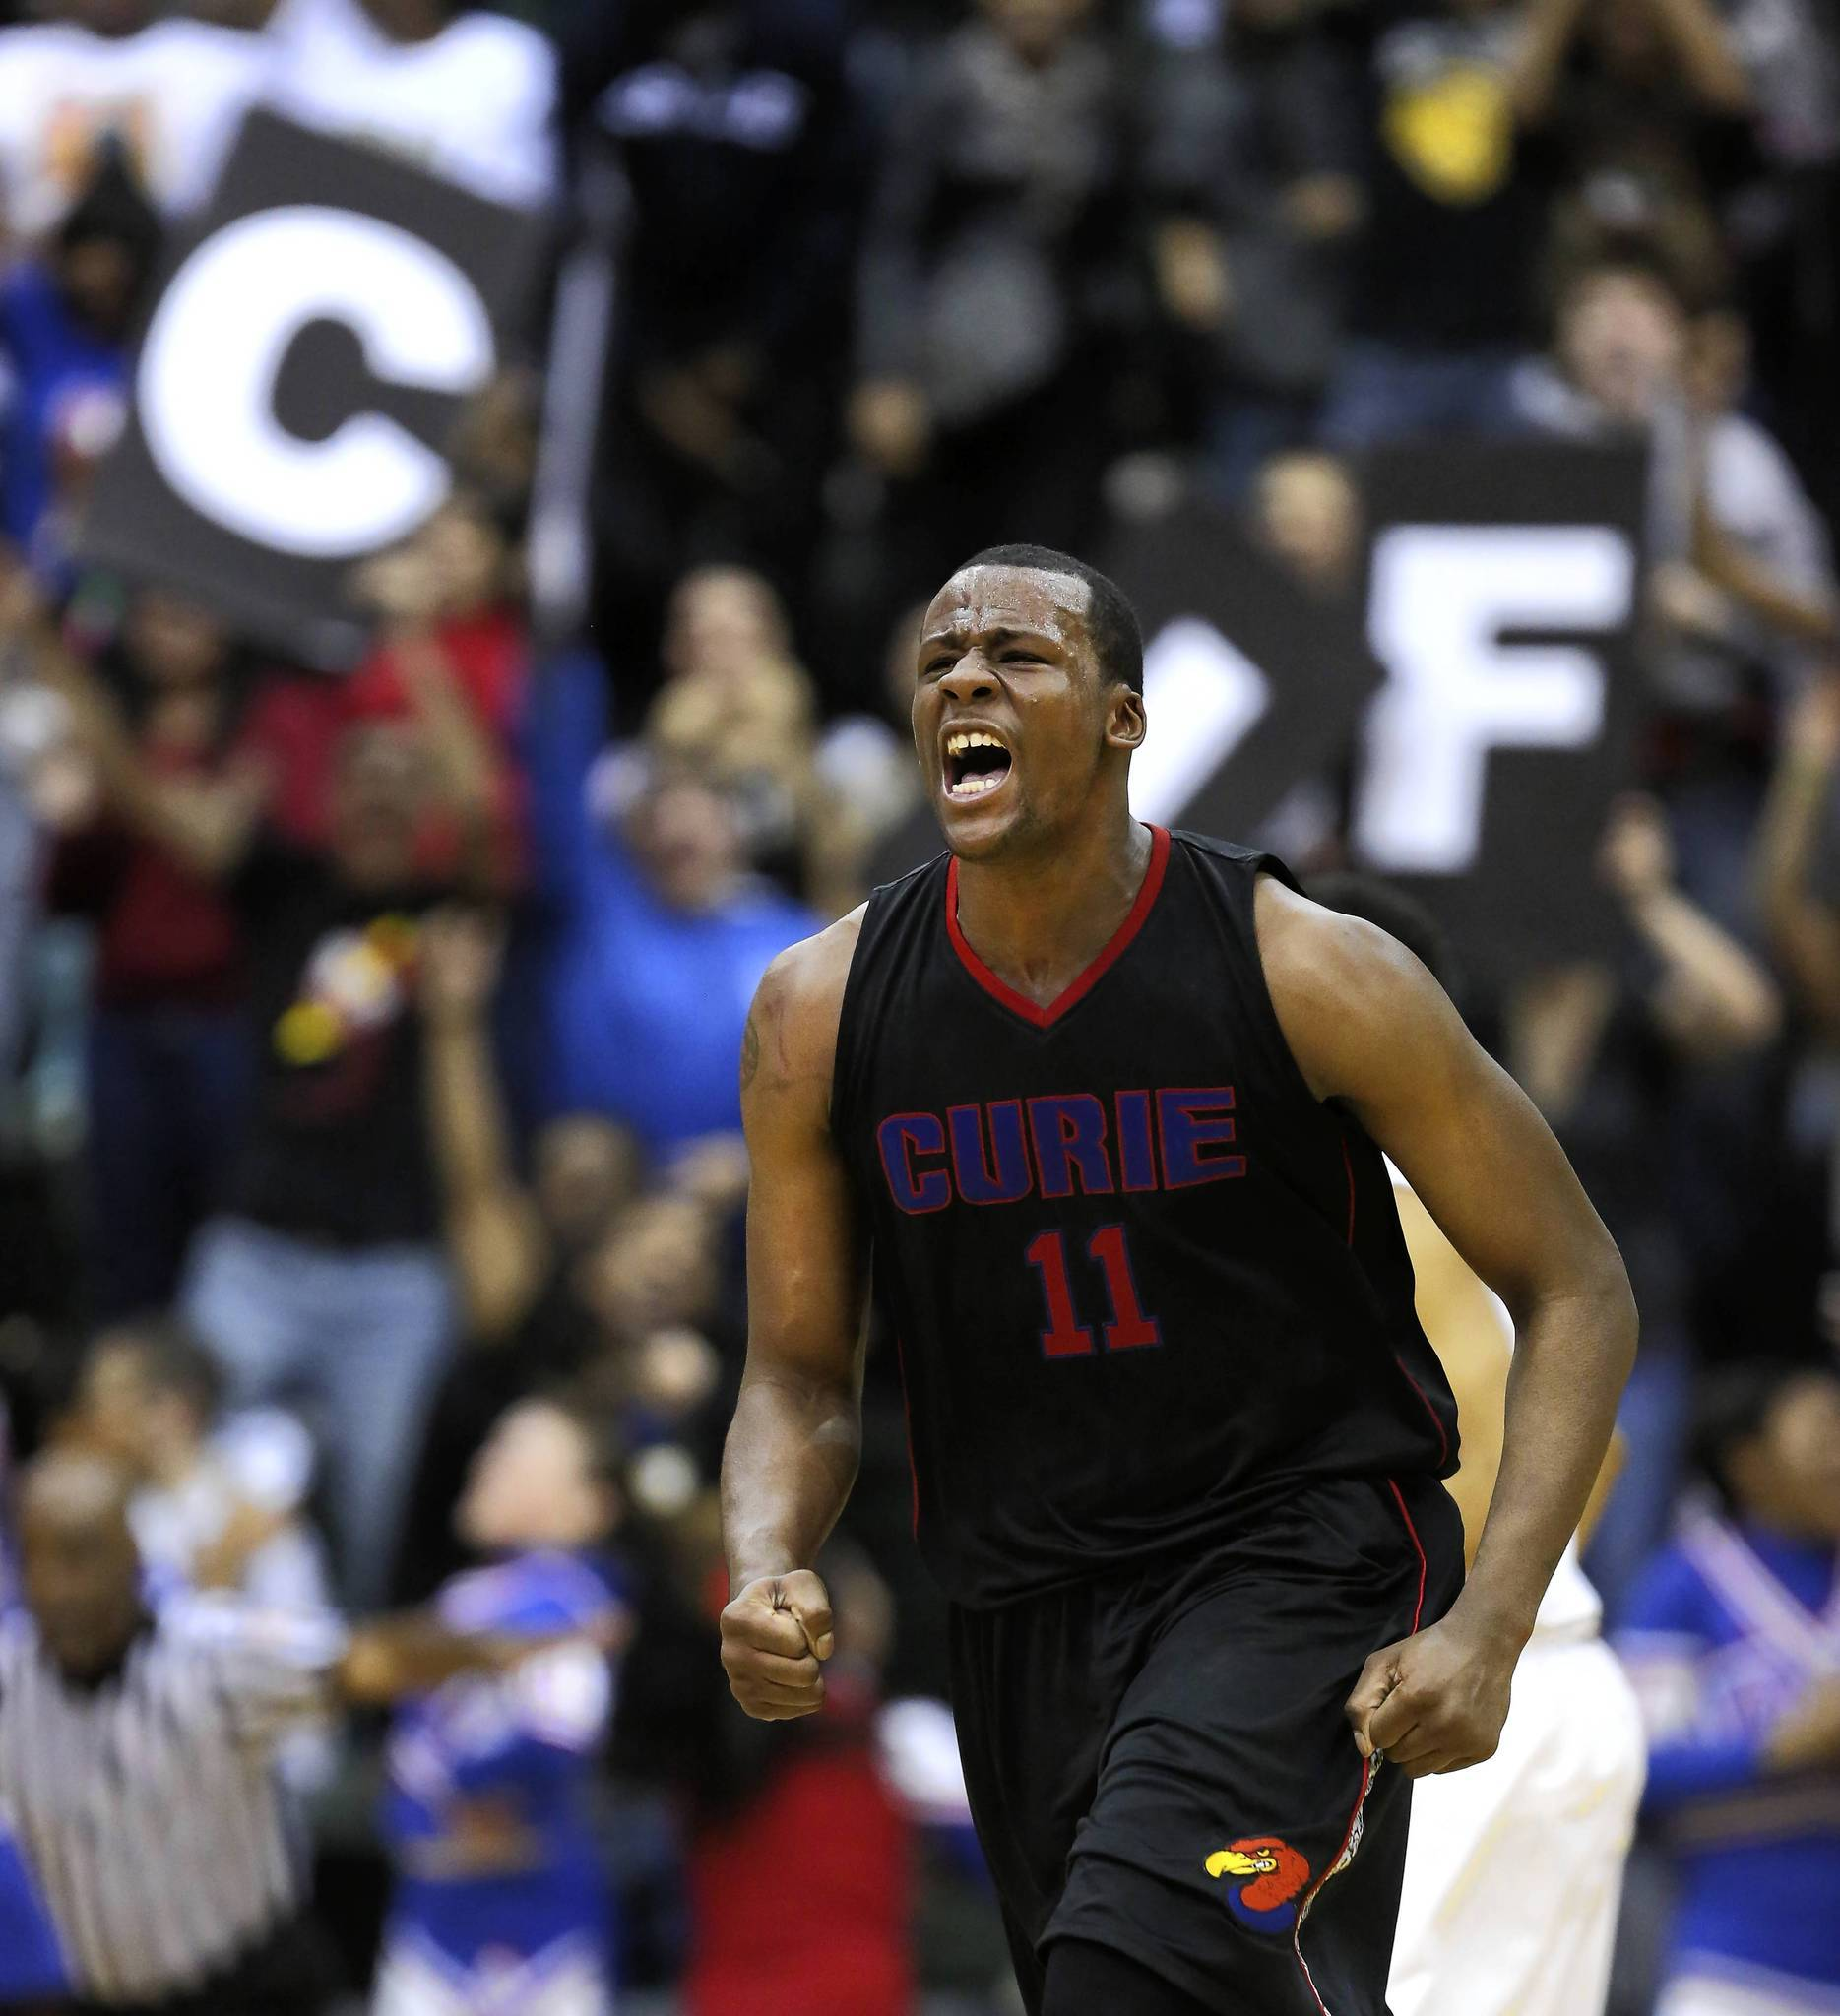 Curie's Cliff Alexander celebrates after scoring against Whitney Young in the public league playoff final at Chicago State University on Friday, February 21, 2014.